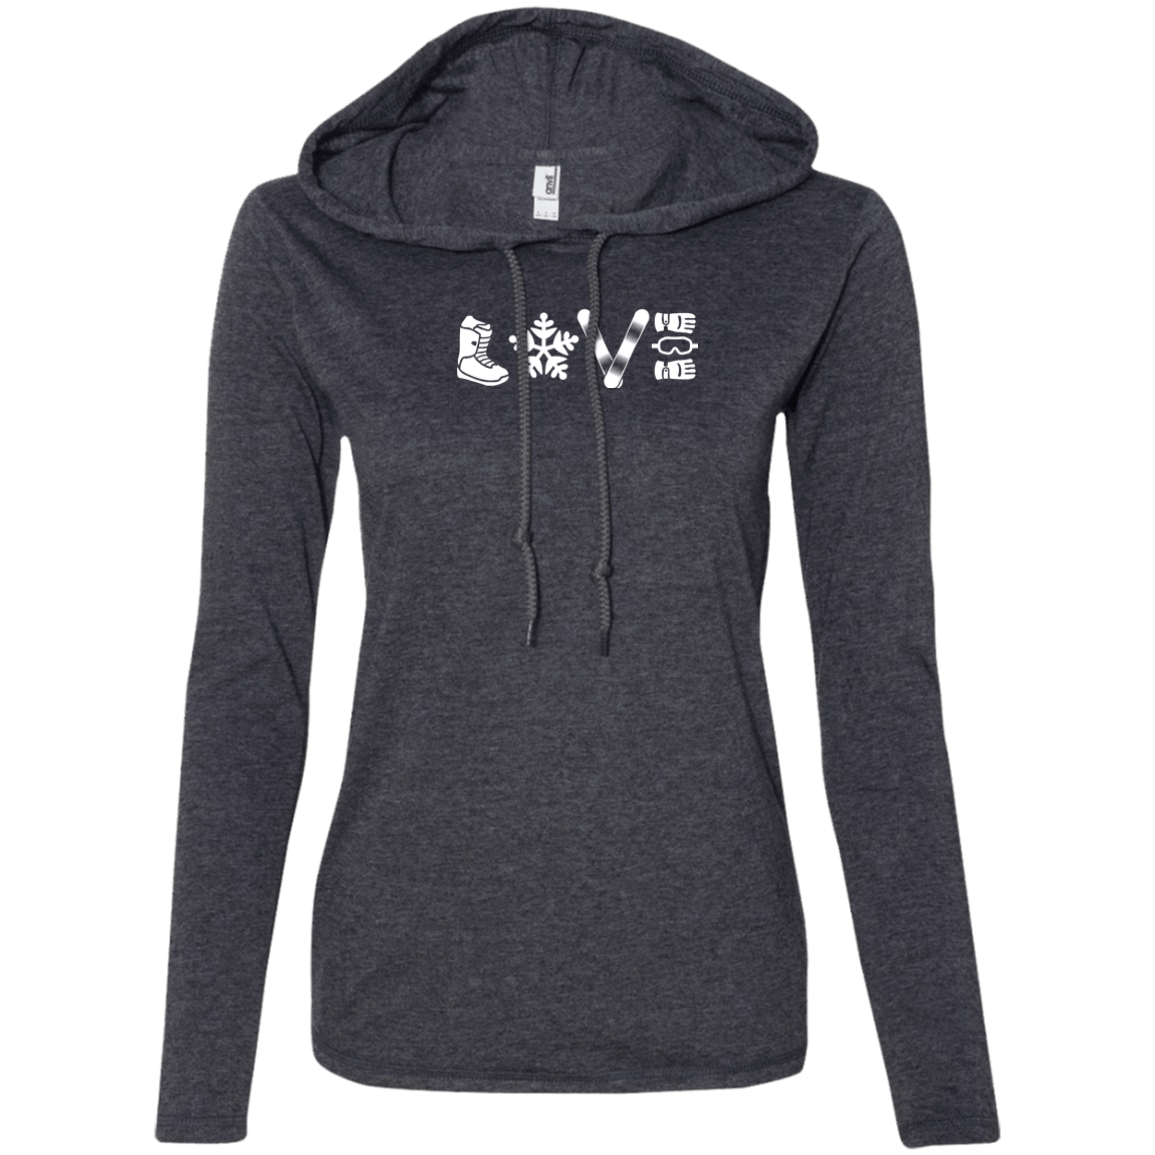 L.O.V.E. Snowboarding Hoodies - Powderaddicts